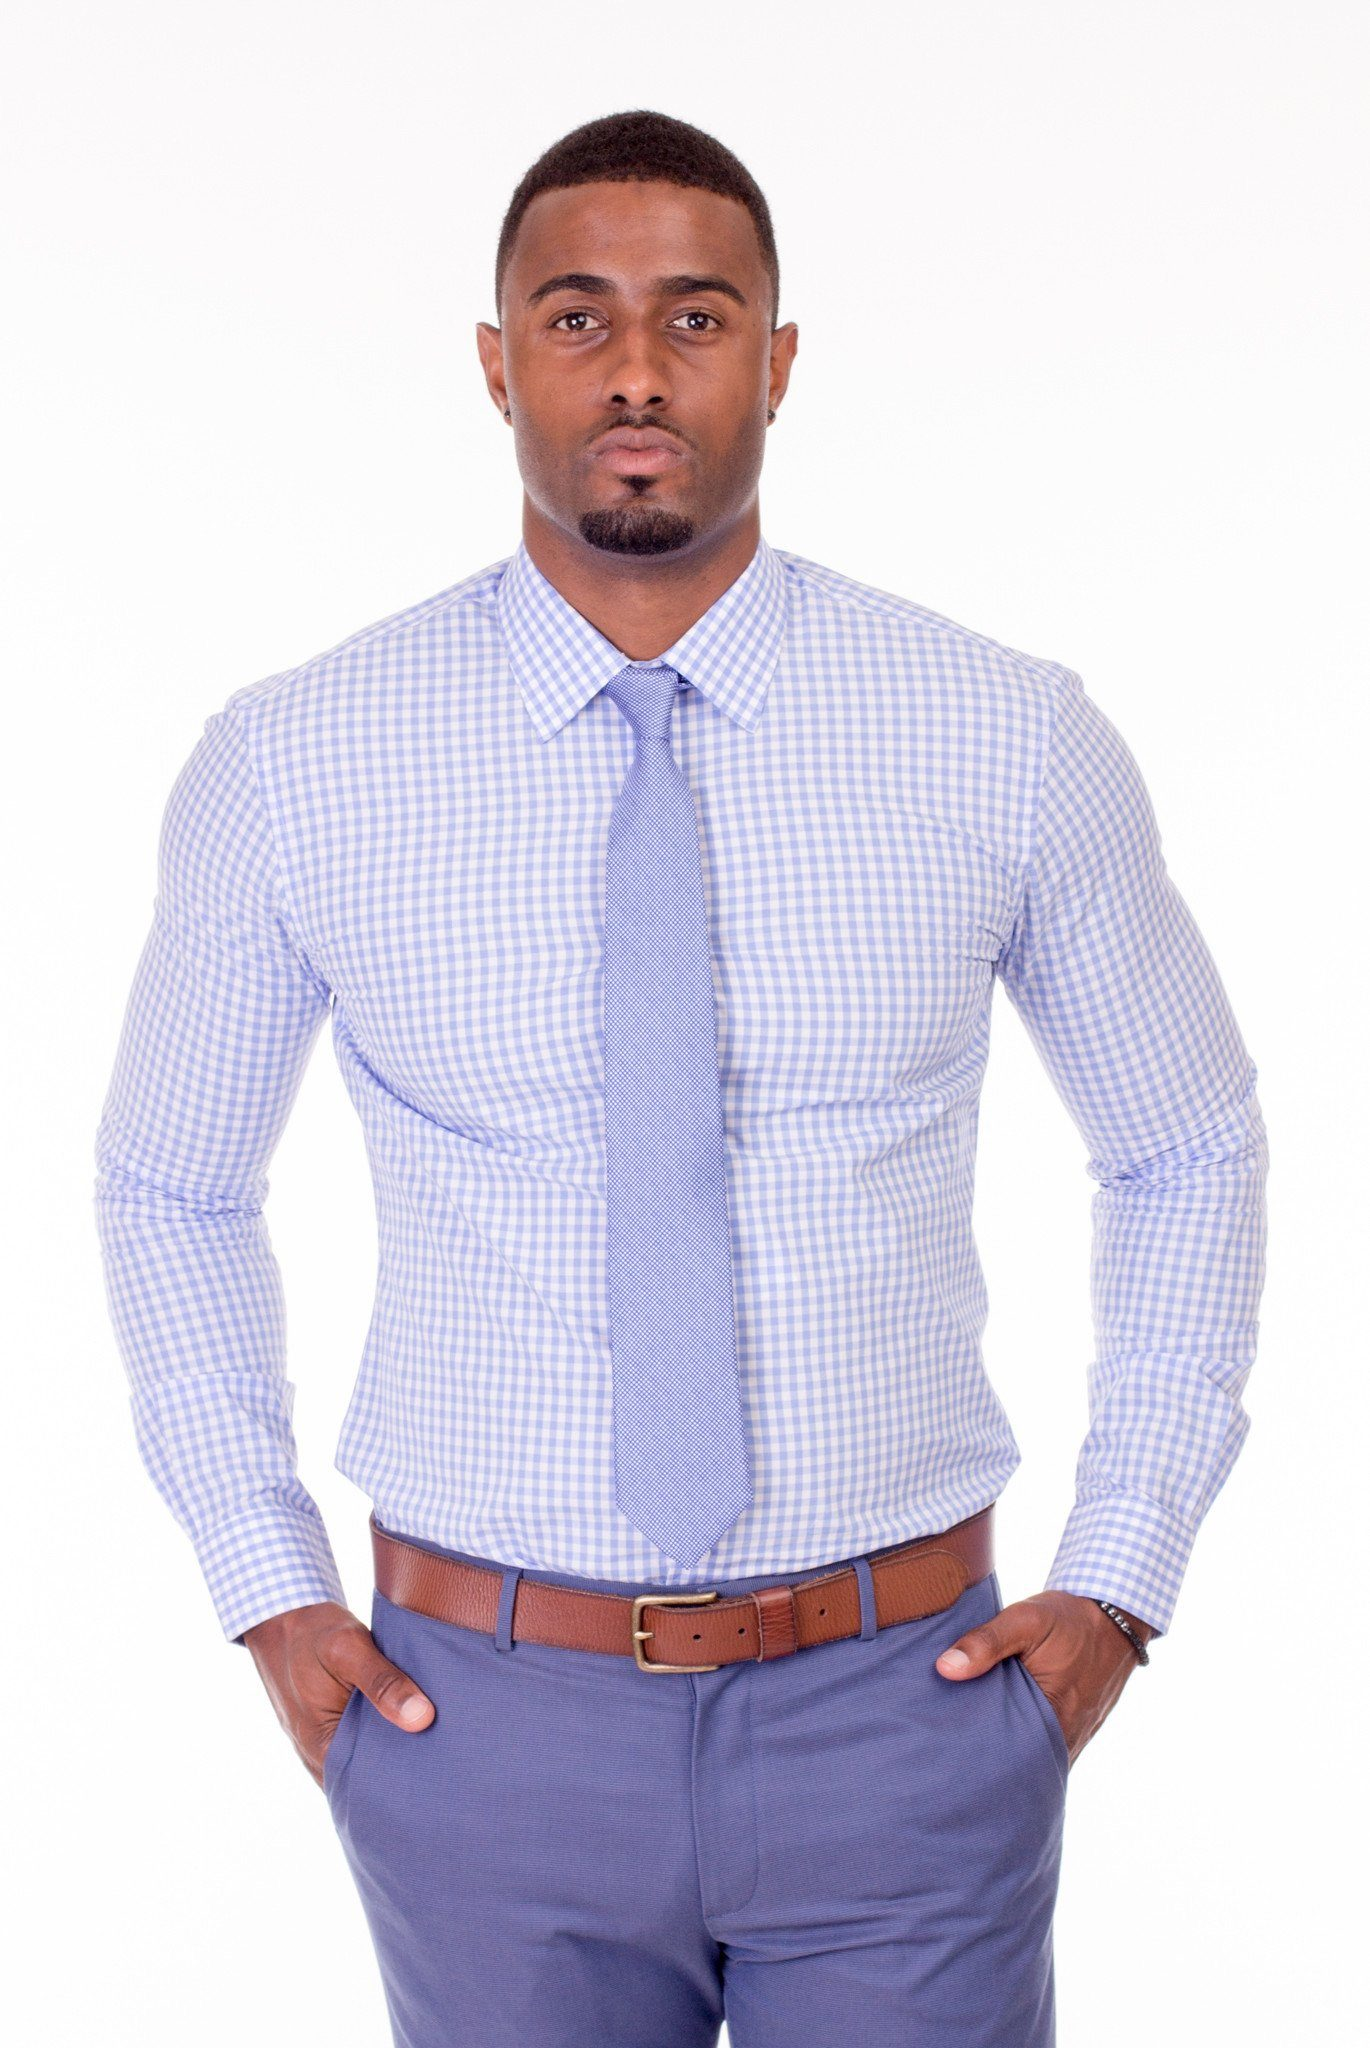 Monaco Light Blue Gingham Dress Shirt - Poor Little Rich Boy Custom Men's Dress Shirts - Plrbclothing.com